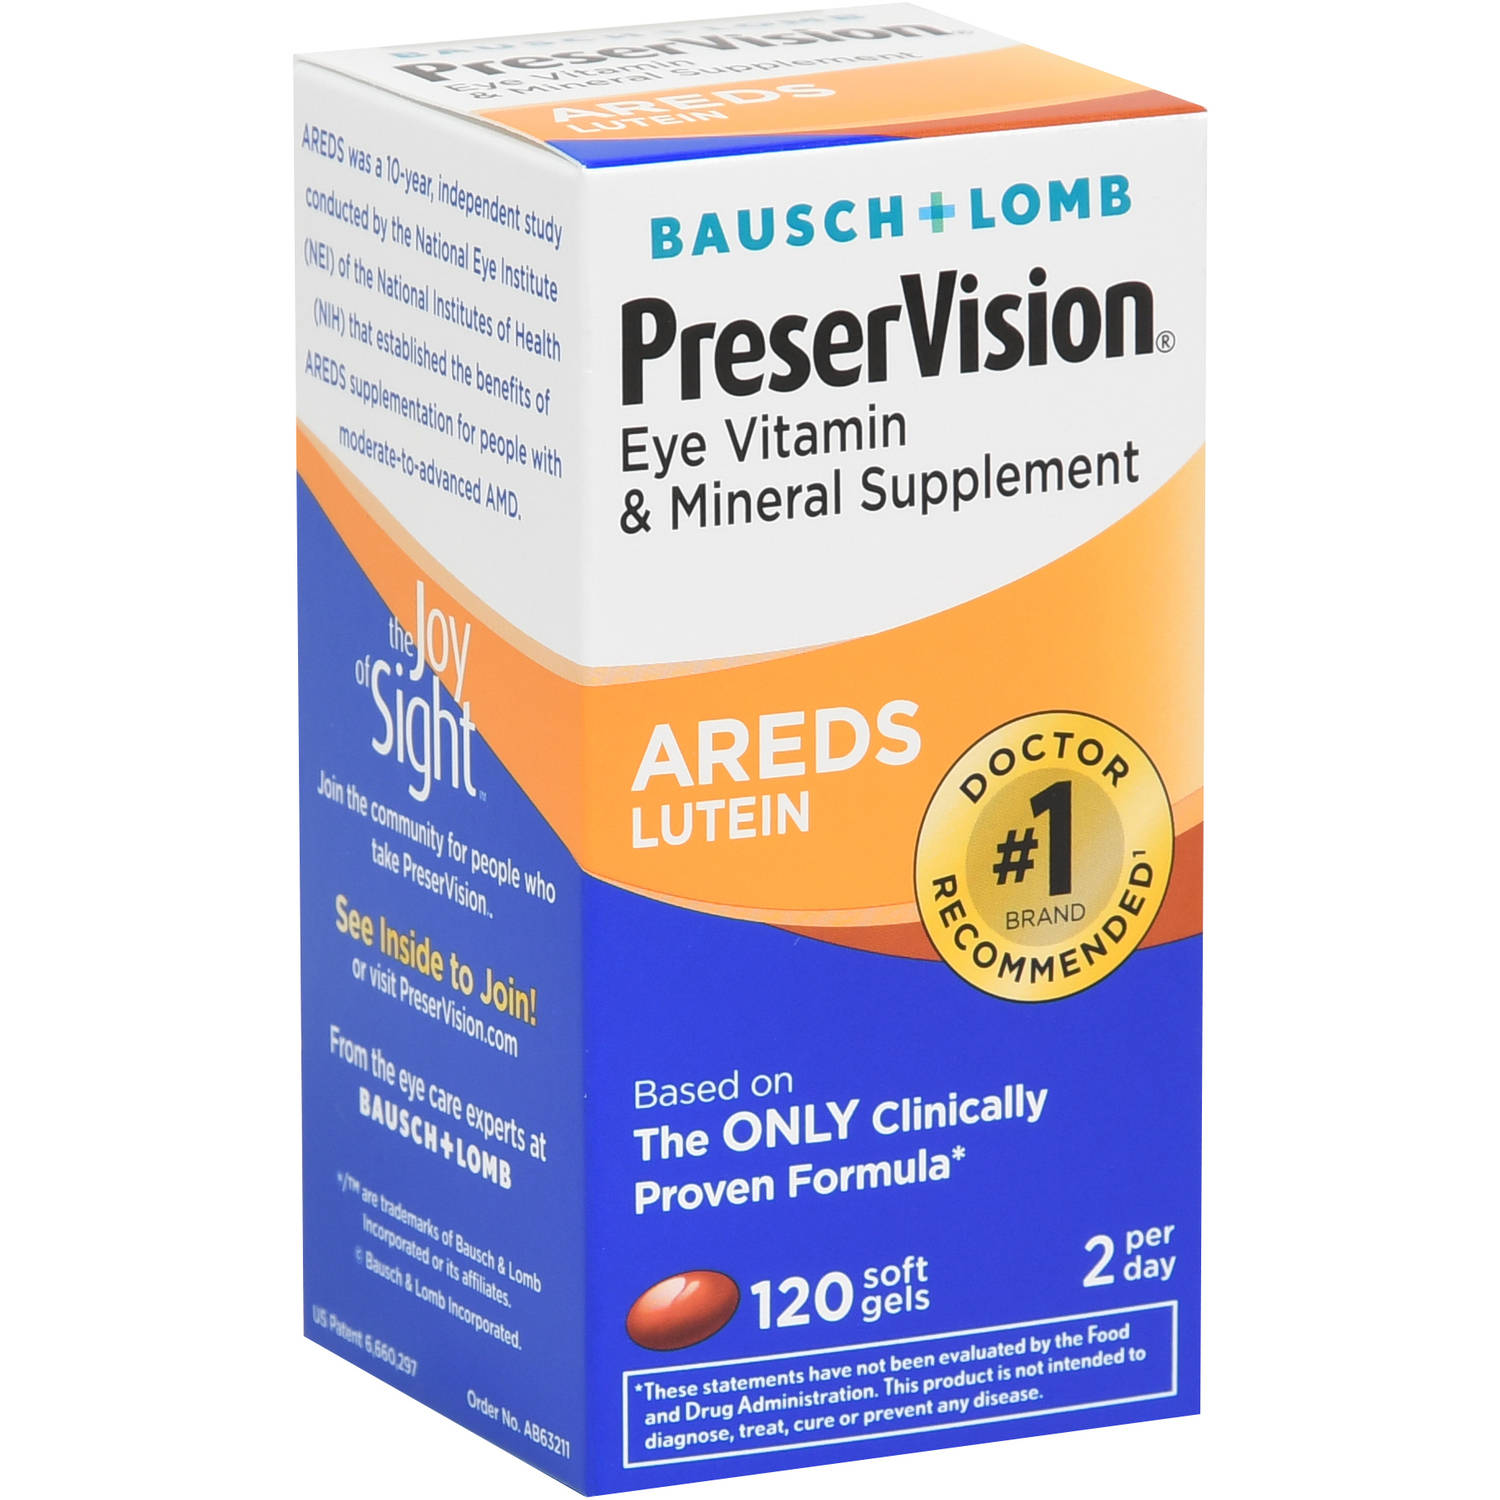 PreserVision Eye Vitamin and Mineral Supplement AREDS 2 Formula contains the exact levels of nutrients recommended by the National Eye Institute to help reduce the risk of progression in people with moderate to advanced Age-related Macular Degeneration (AMD).